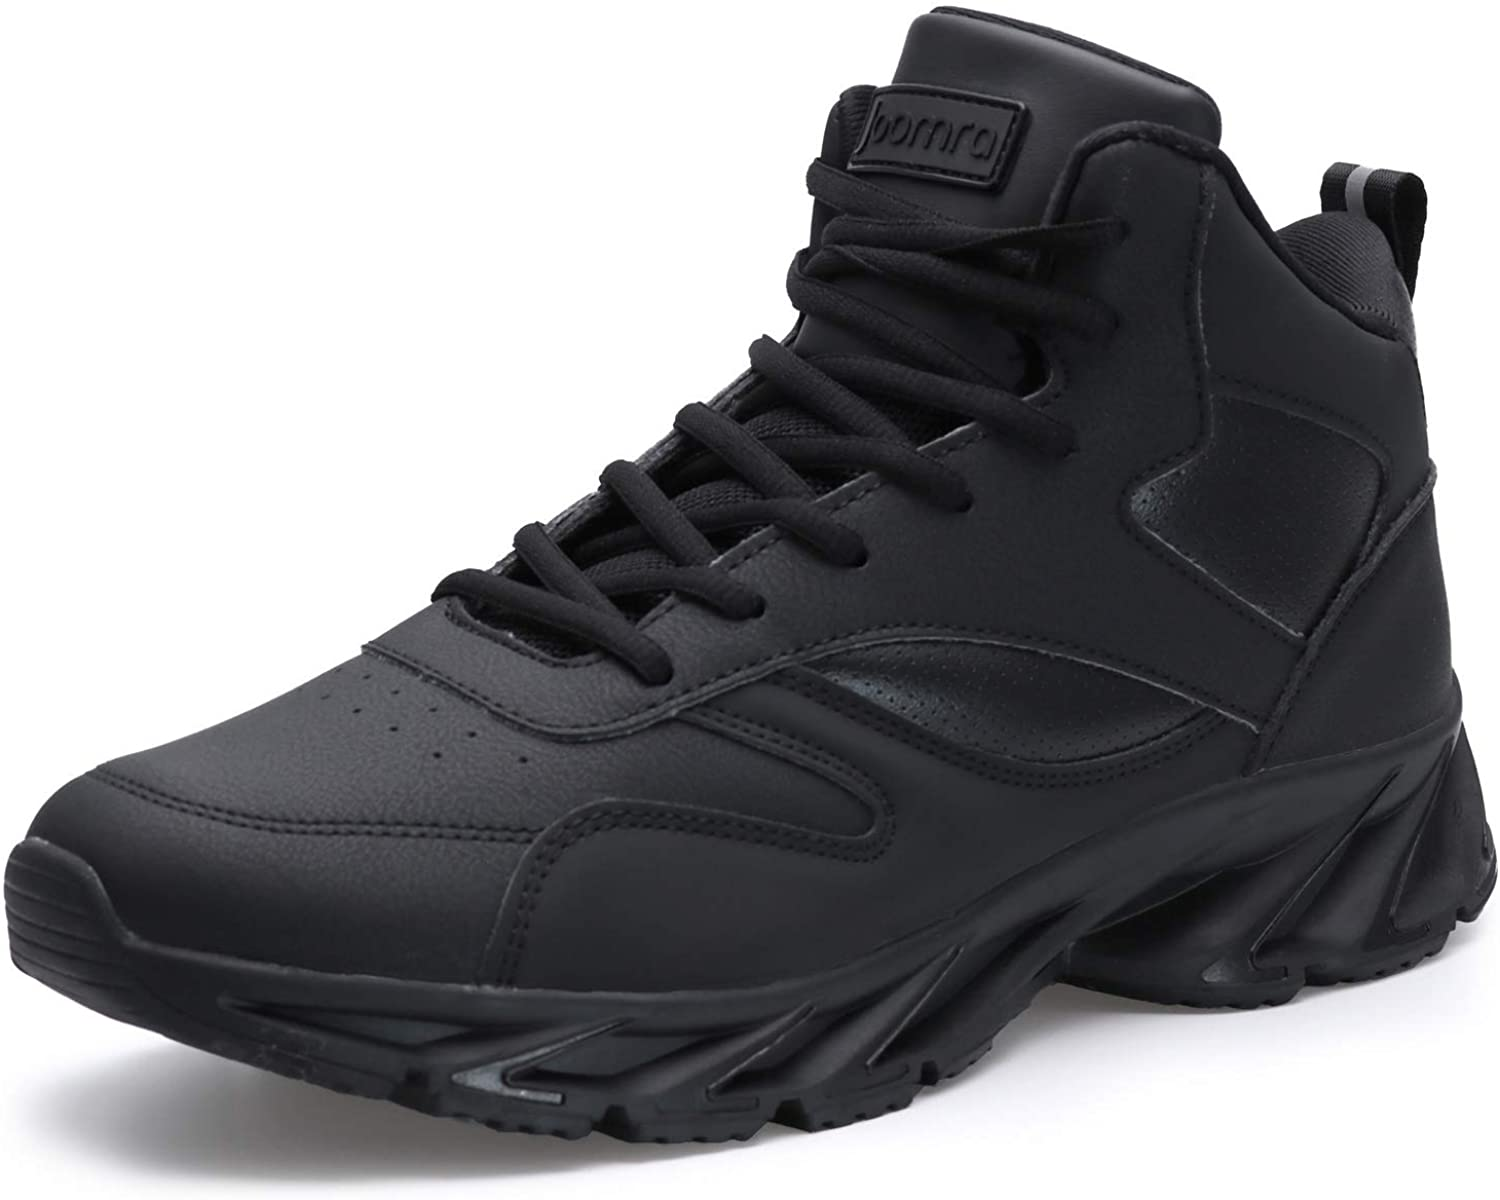 Joomra Men's Stylish Sneakers オンライン限定商品 High Shoes Athletic-Inspired Top 5☆好評